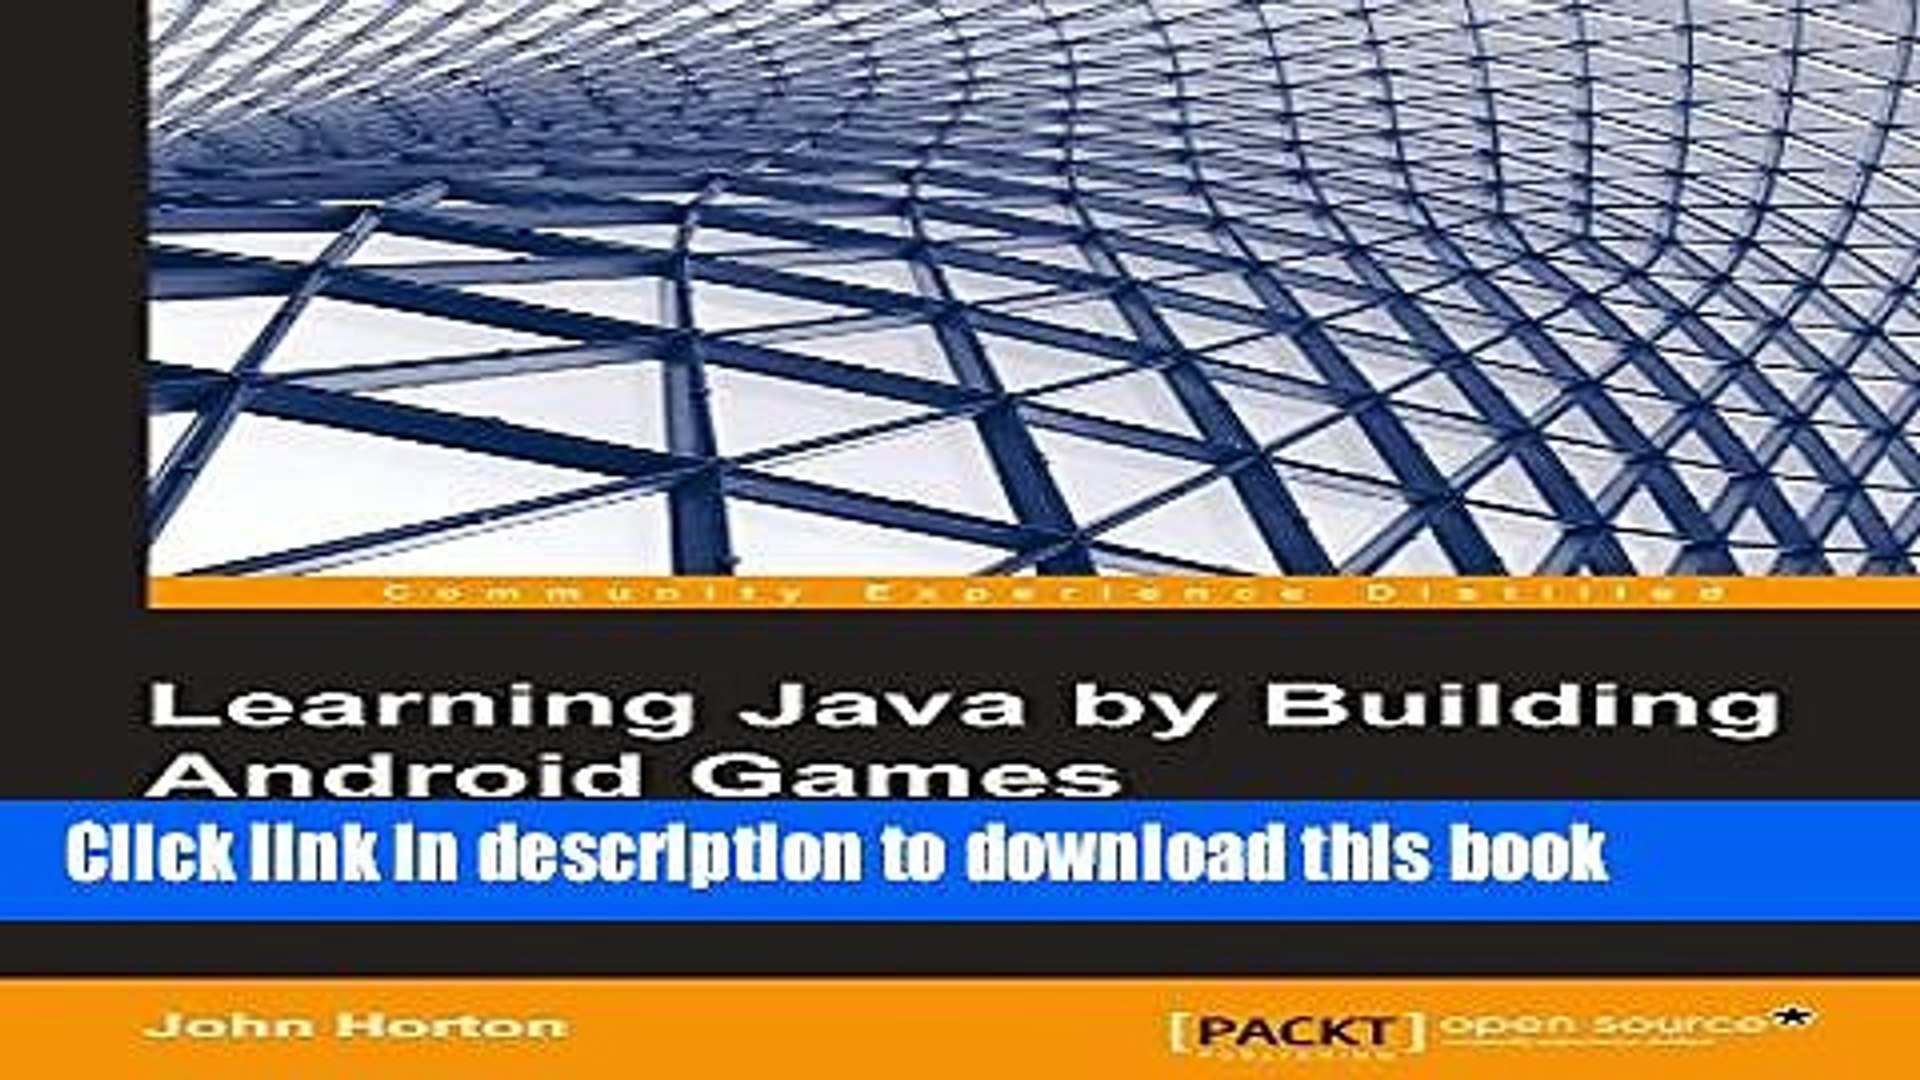 Books Learning Java by Building Android Games - Explore Java Through Mobile Game Development Full